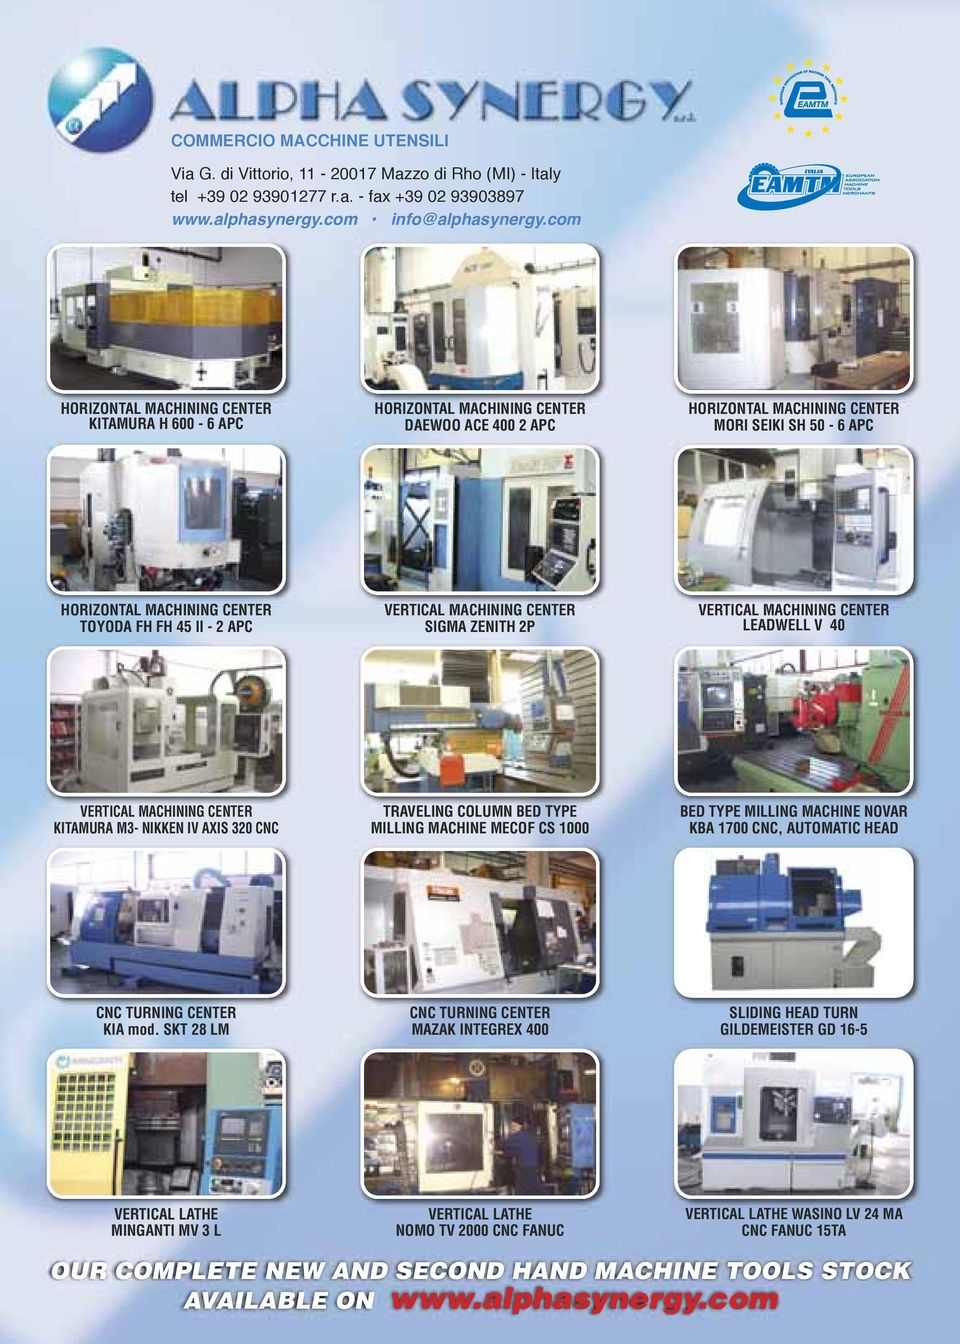 - 2 APC VERTICAL MACHINING CENTER SIGMA ZENITH 2P VERTICAL MACHINING CENTER LEADWELL V 40 VERTICAL MACHINING CENTER KITAMURA M3- NIKKEN IV AXIS 320 CNC TRAVELING COLUMN BED TYPE MILLING MACHINE MECOF